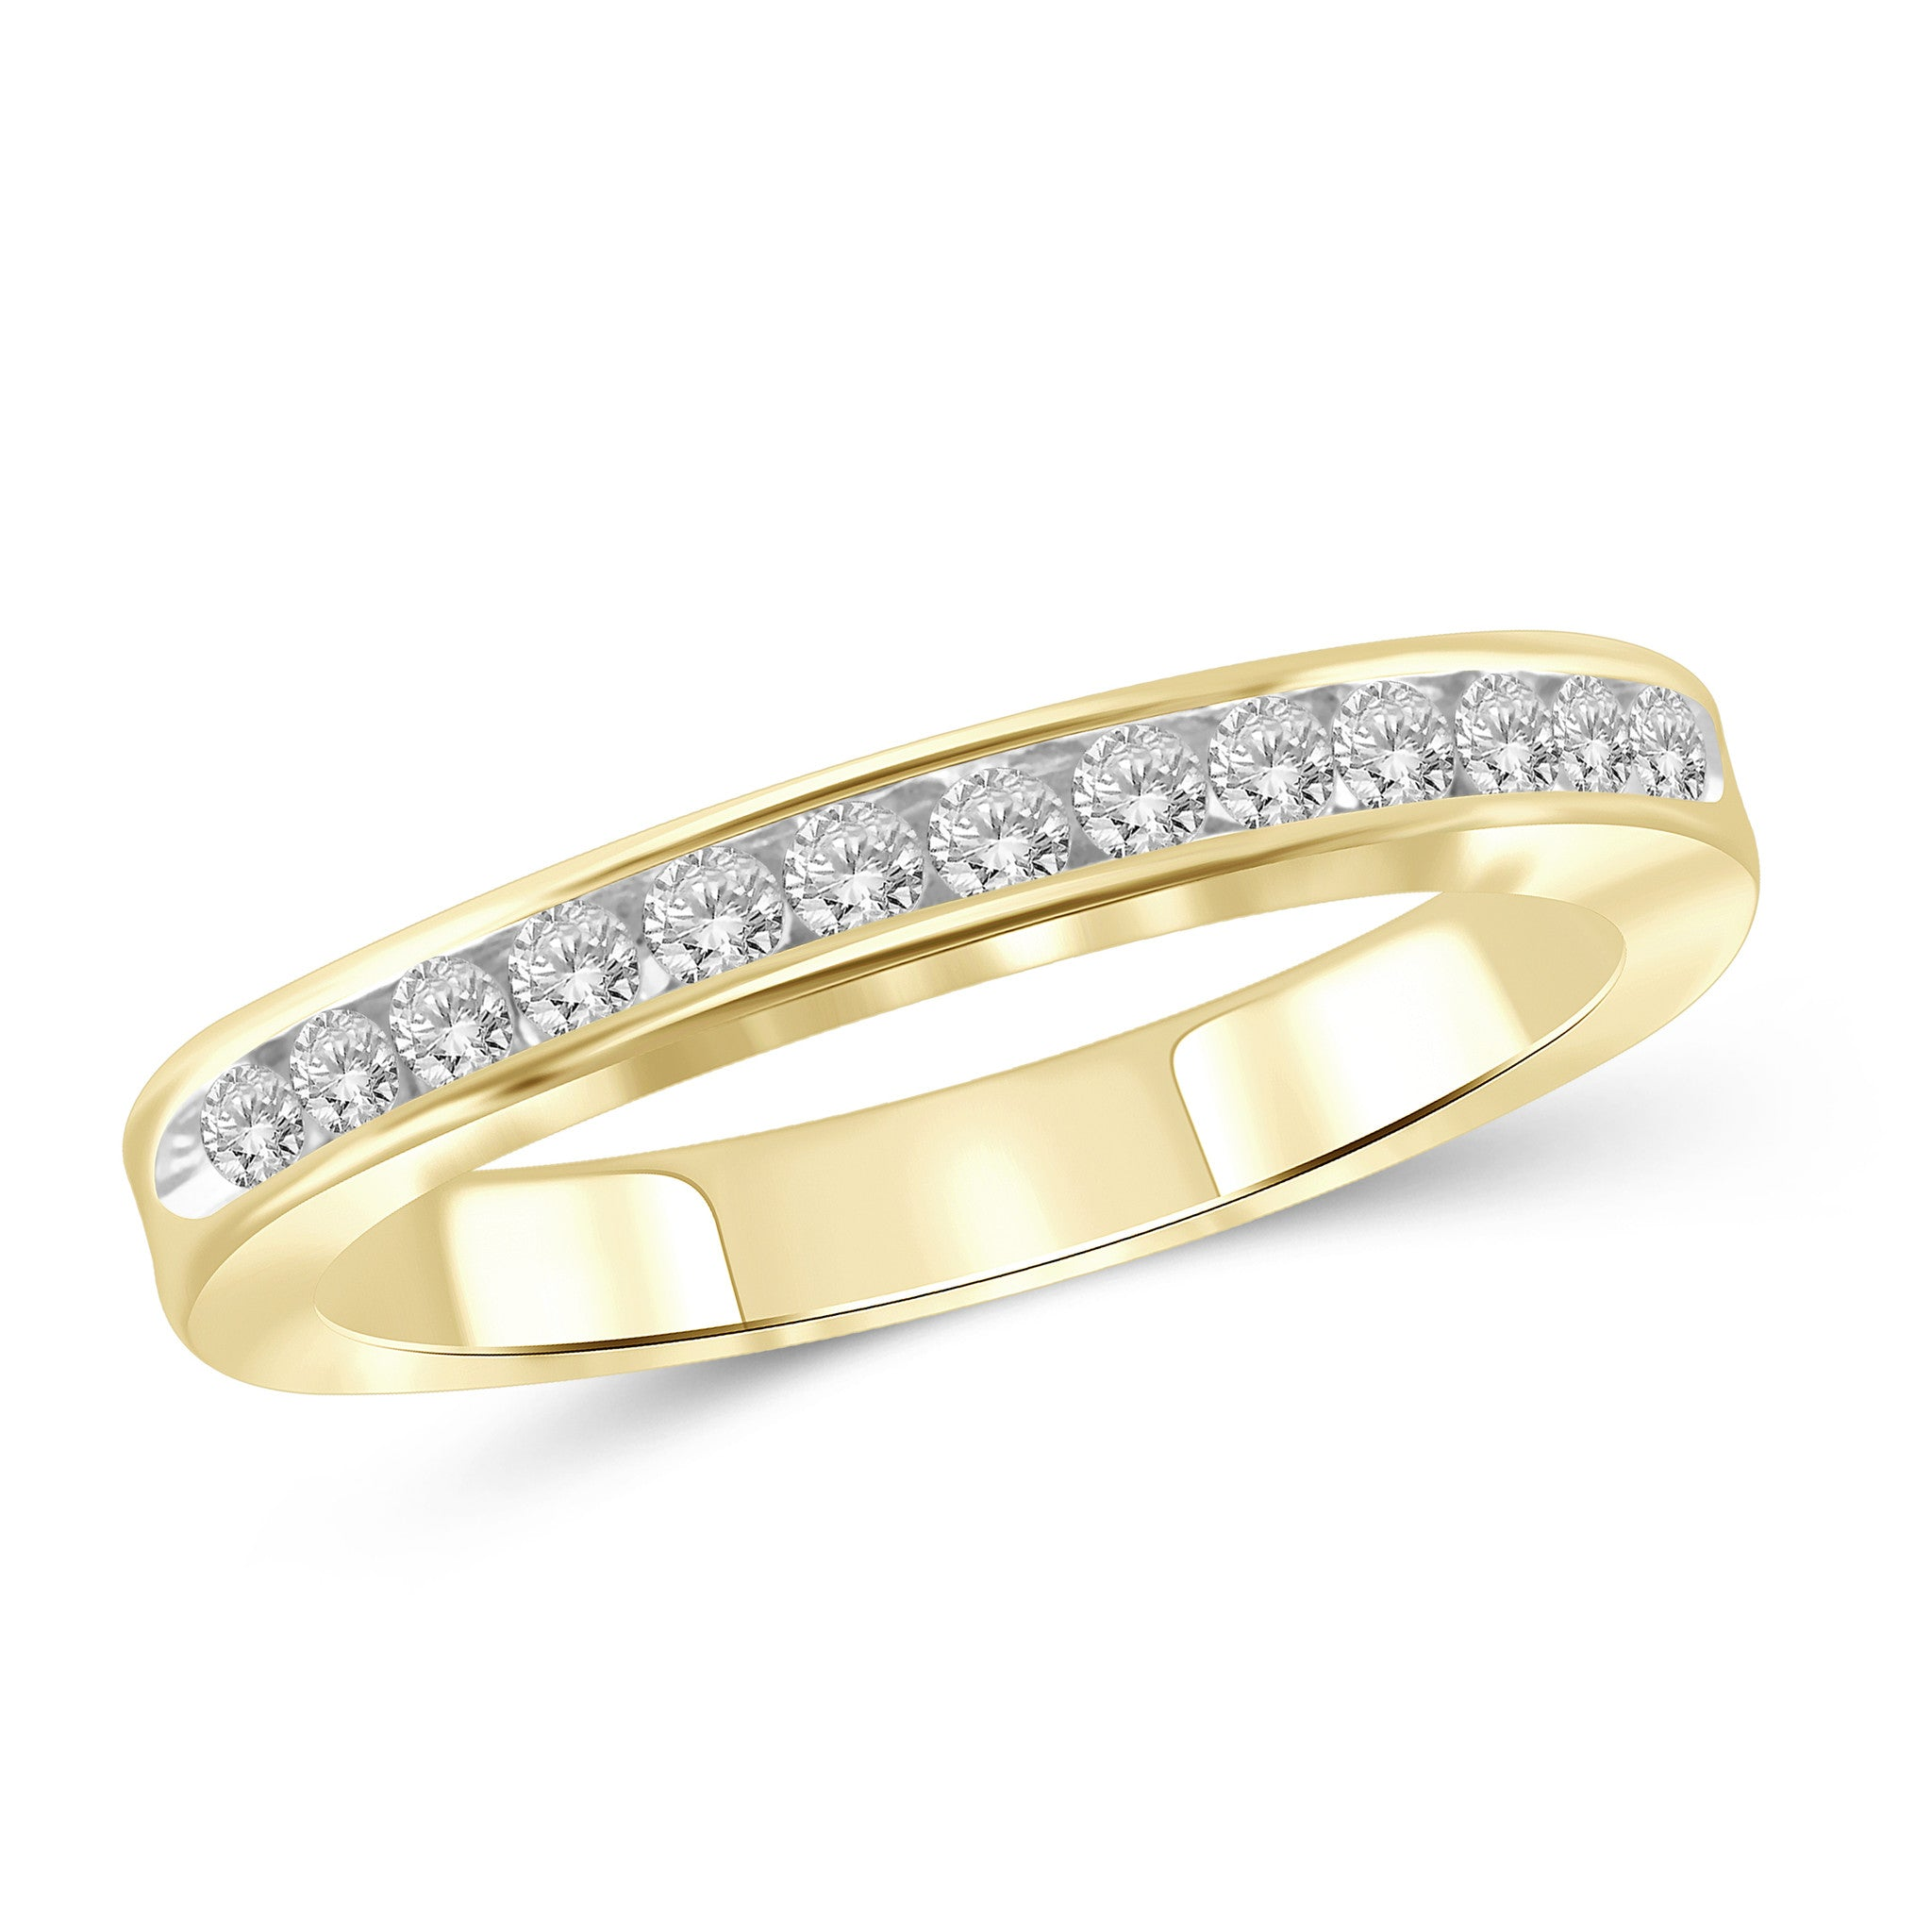 gold has are wedding doesn prefer to all compared like topic i band it yellow because the bands and as color easy costs scratch for t less more subtle or her